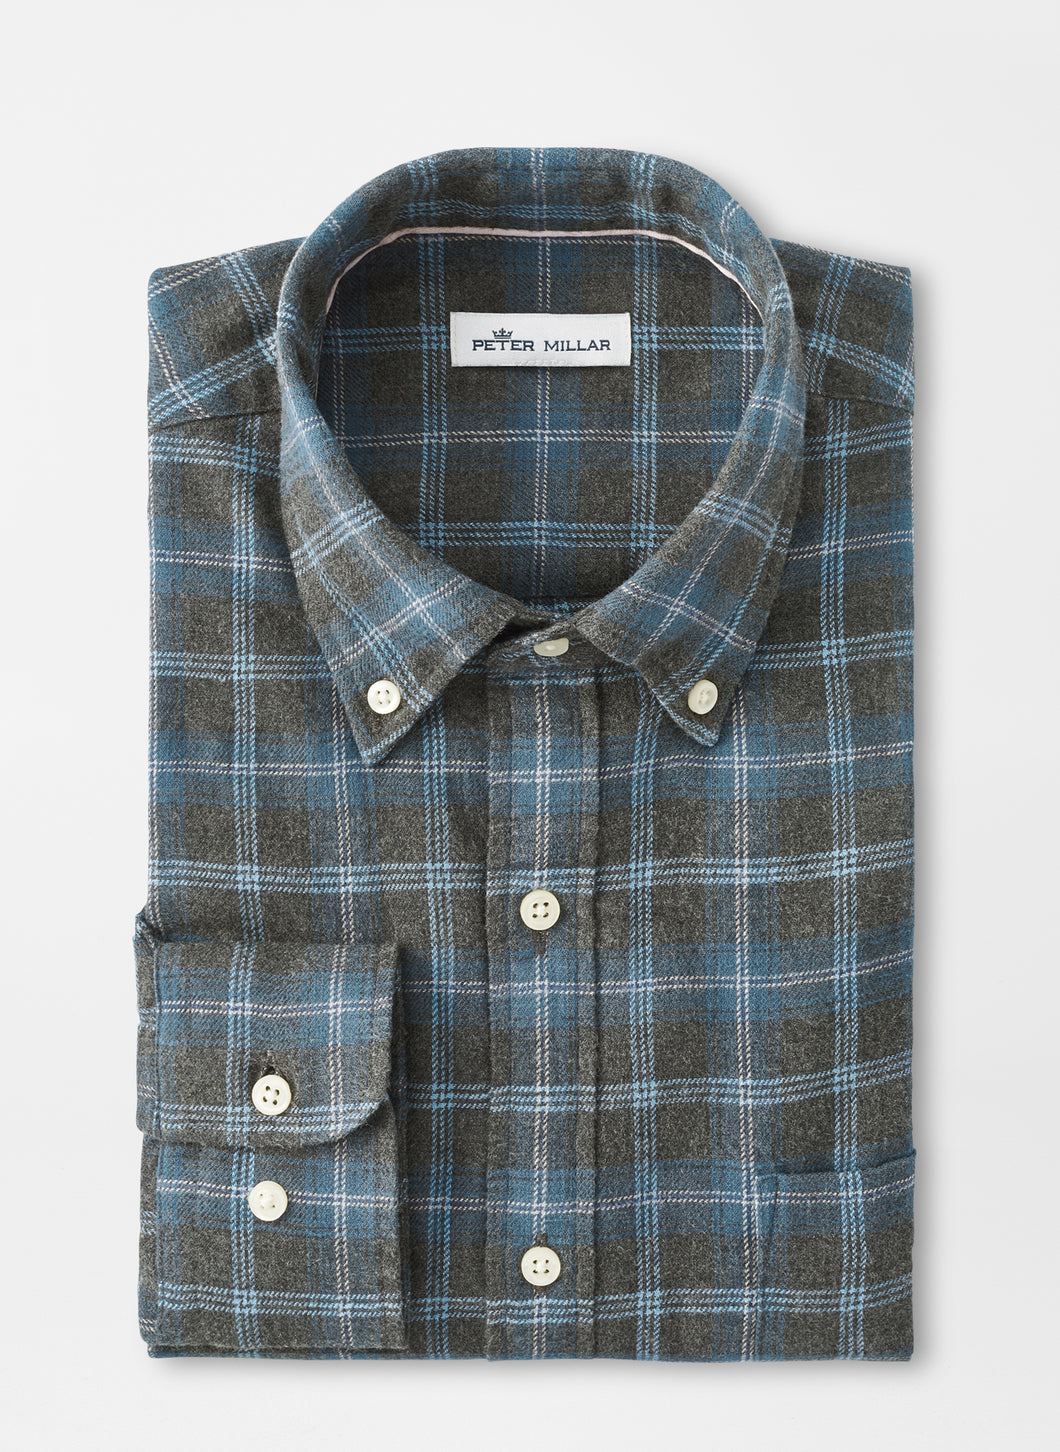 Peter Millar Greymouth Flannel Sport Shirt in Deep Sea